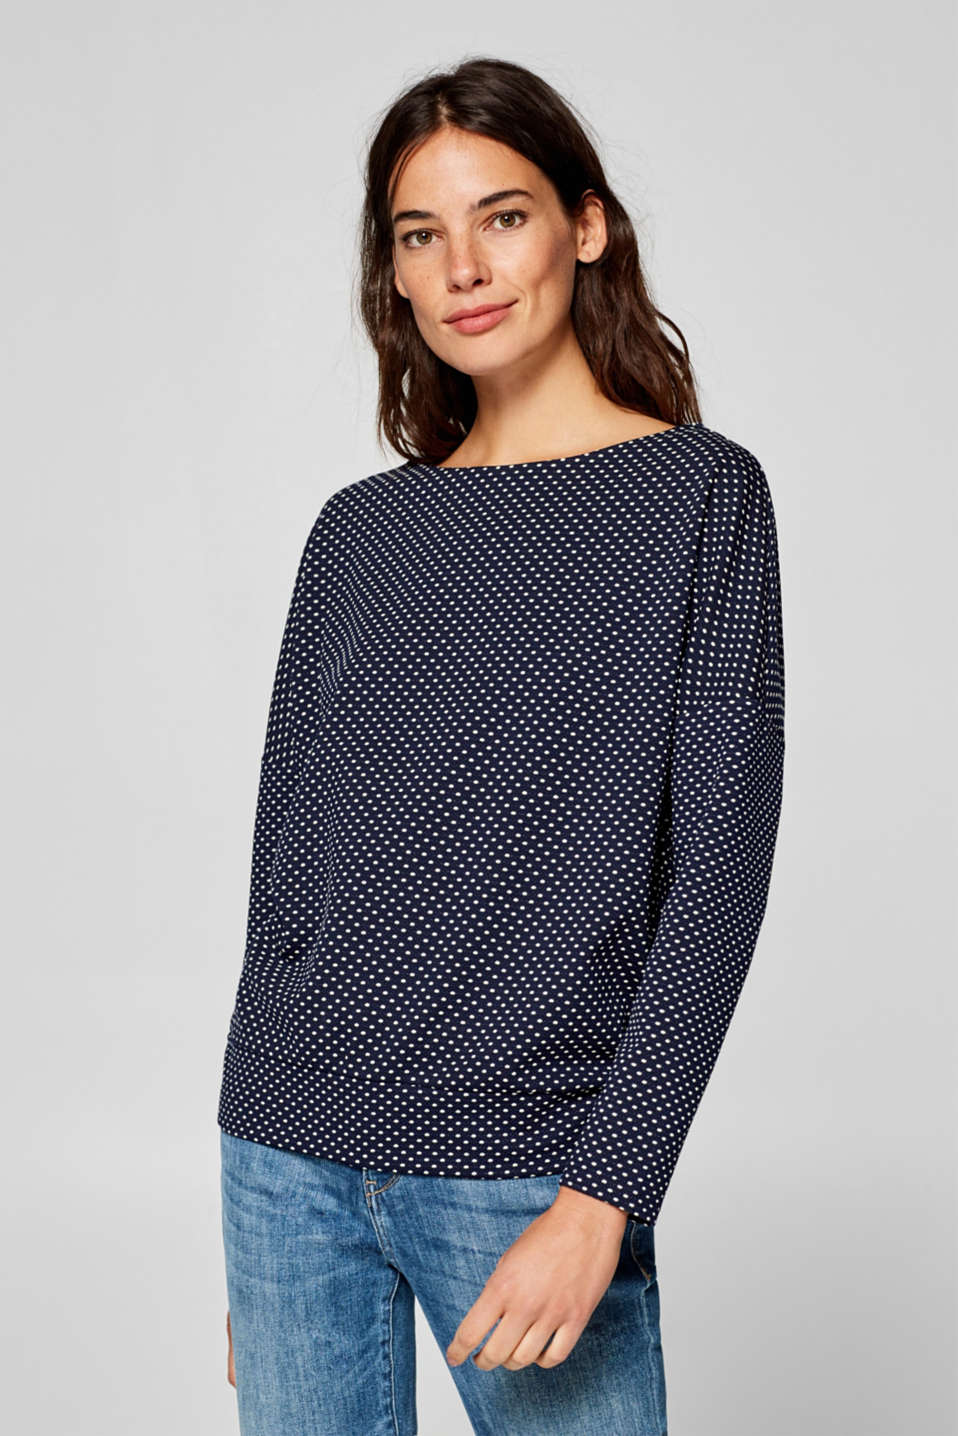 Esprit - Long sleeve stretch top with jacquard polka dots